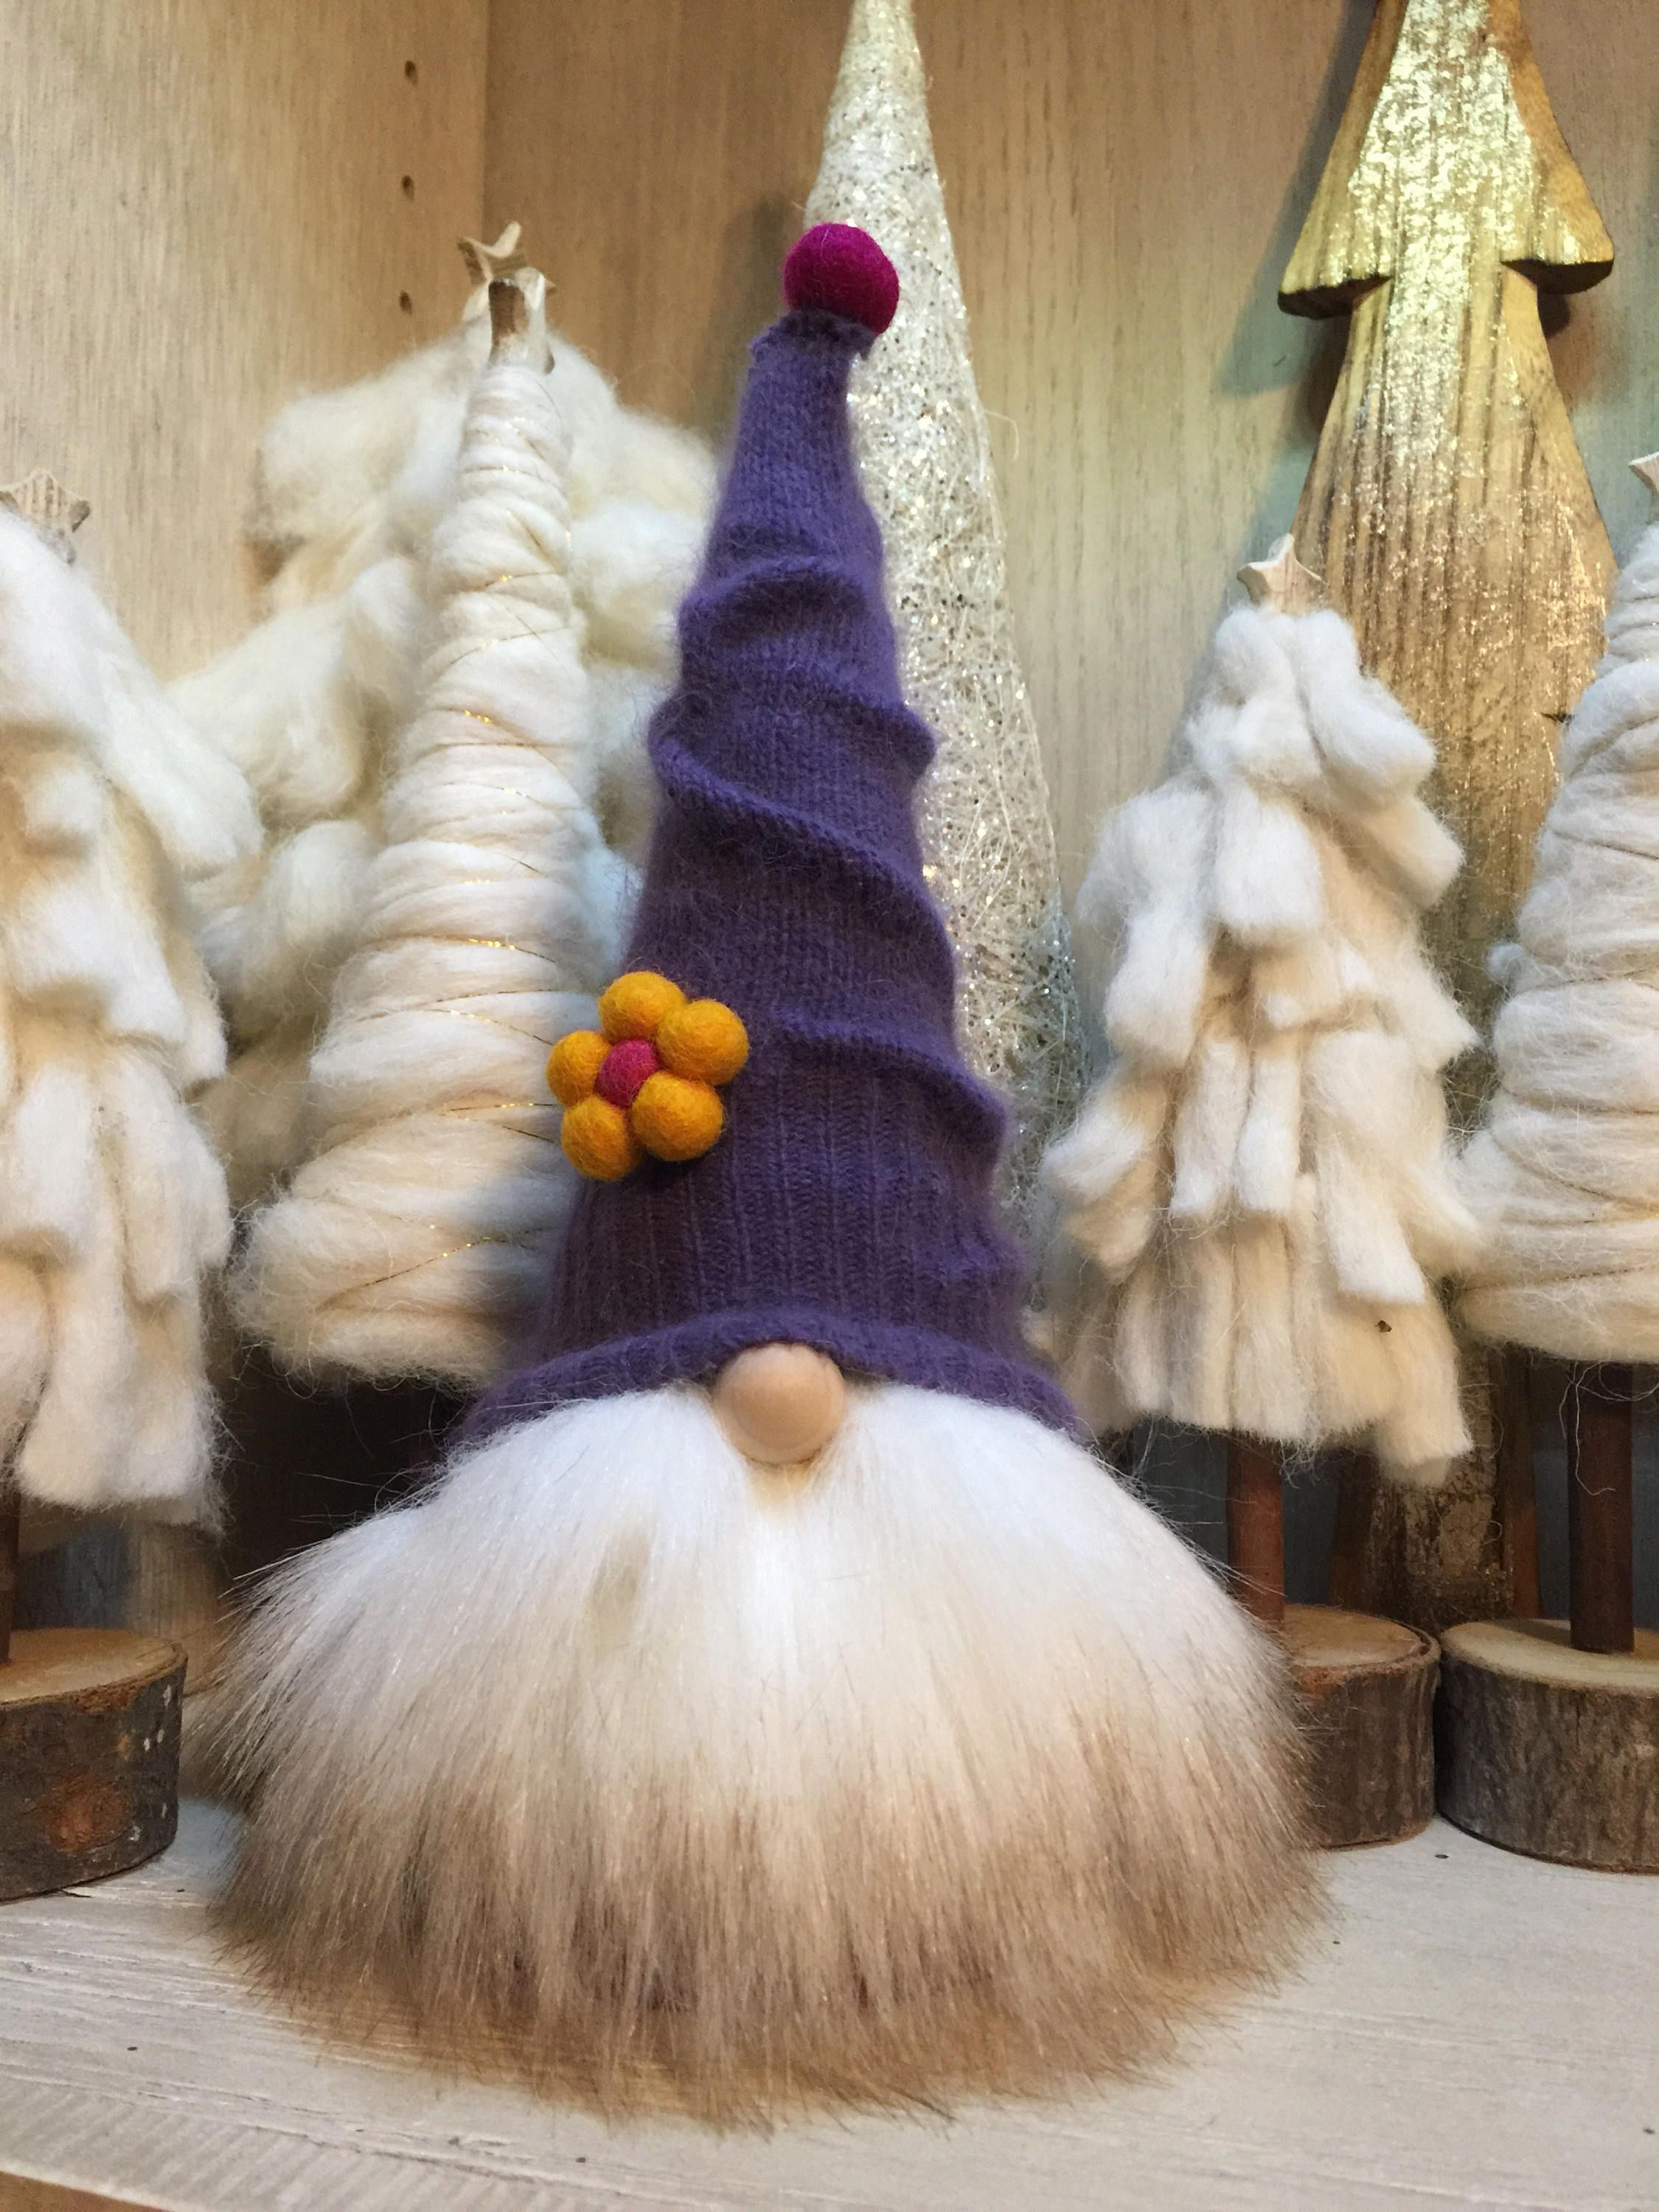 Christmas Gnome Swedish Tomte Scandinavian Folklore Norwegian Nisse Balthazar By Gnomes4theholidays On Etsy Gnomes Christmas Gnome Christmas Crafts